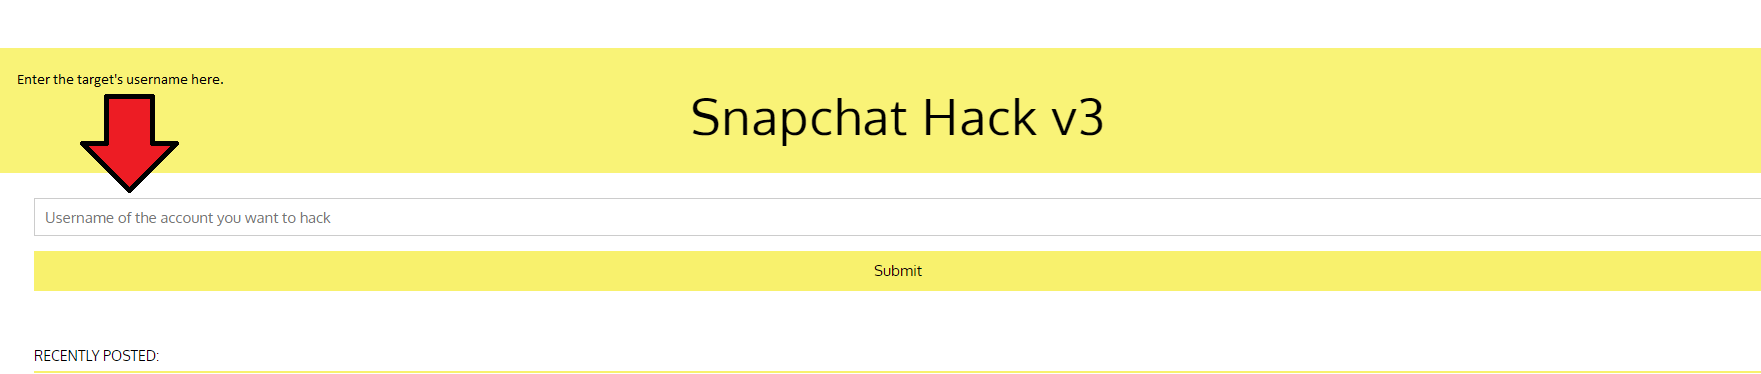 How to hack any Snapchat account instantly in 2019